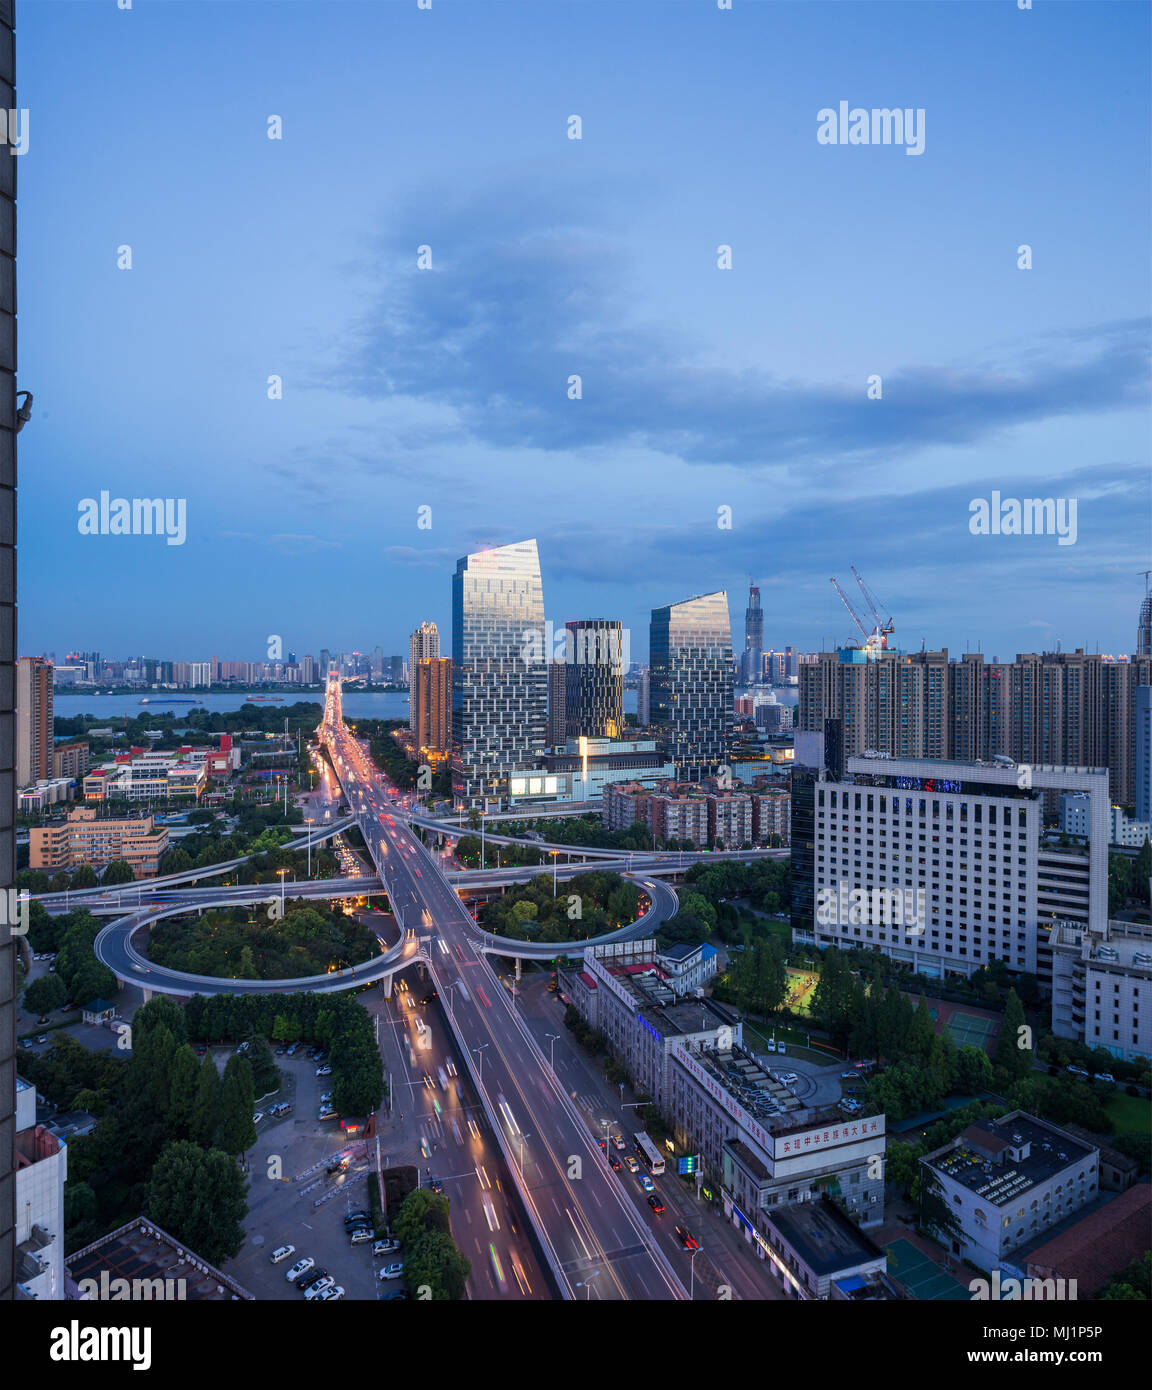 Wuhan, hubei province huangpu east and city construction at night - Stock Image